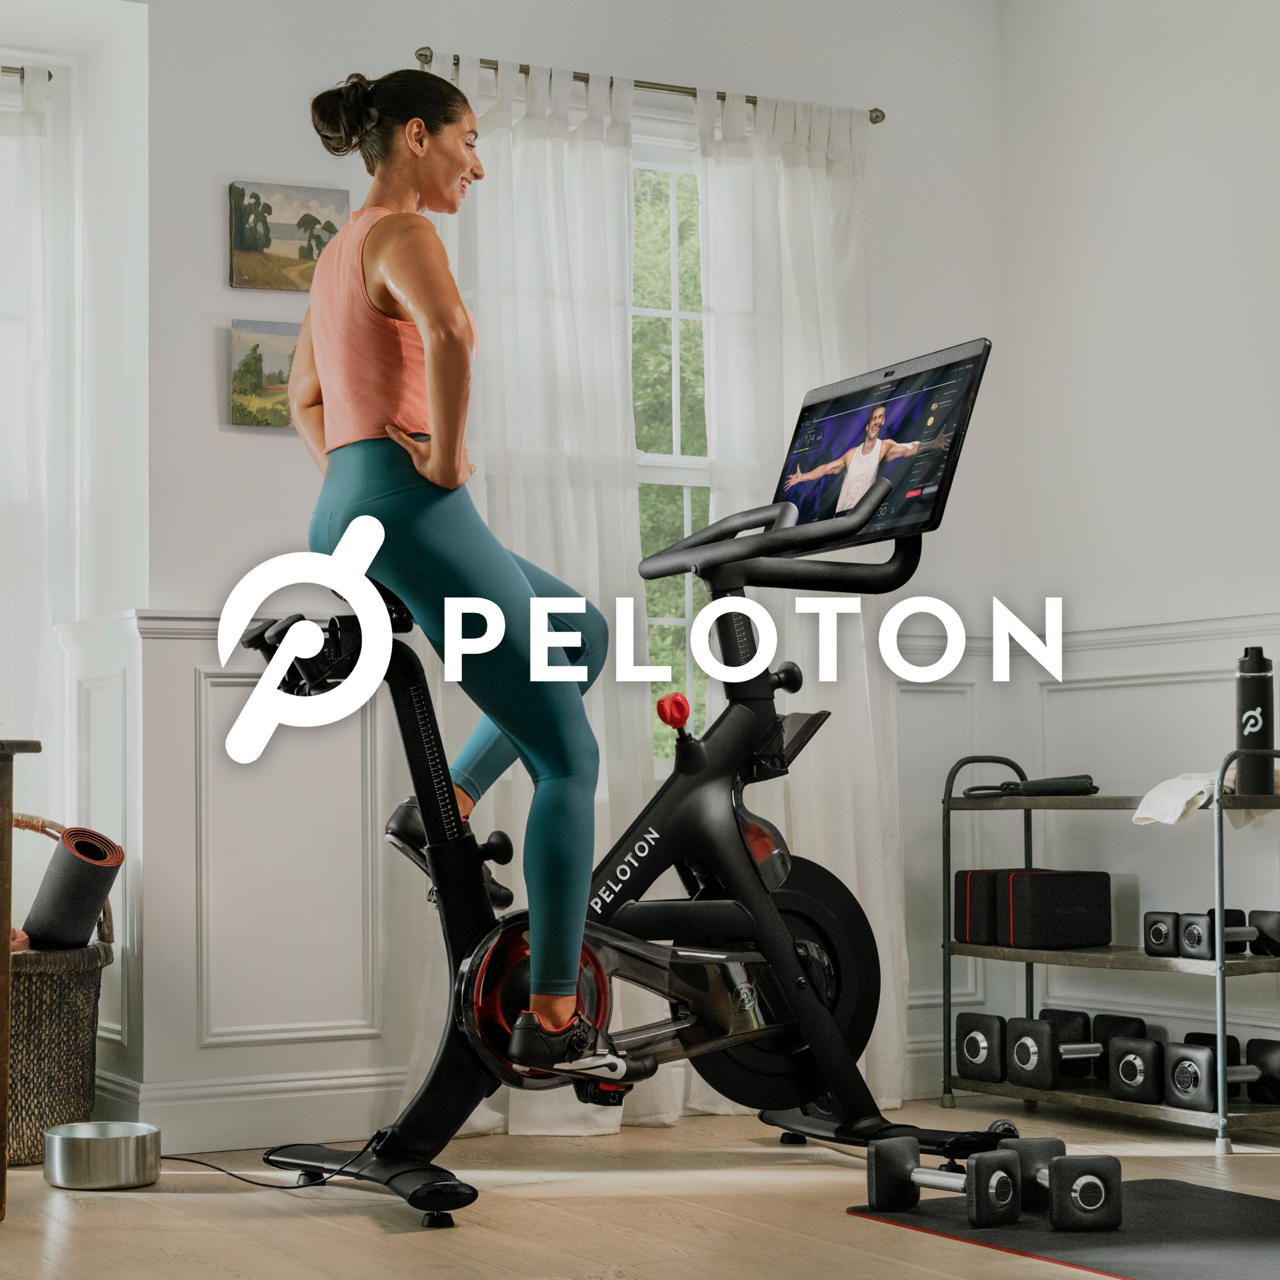 Peloton – Fitness that fits into your life